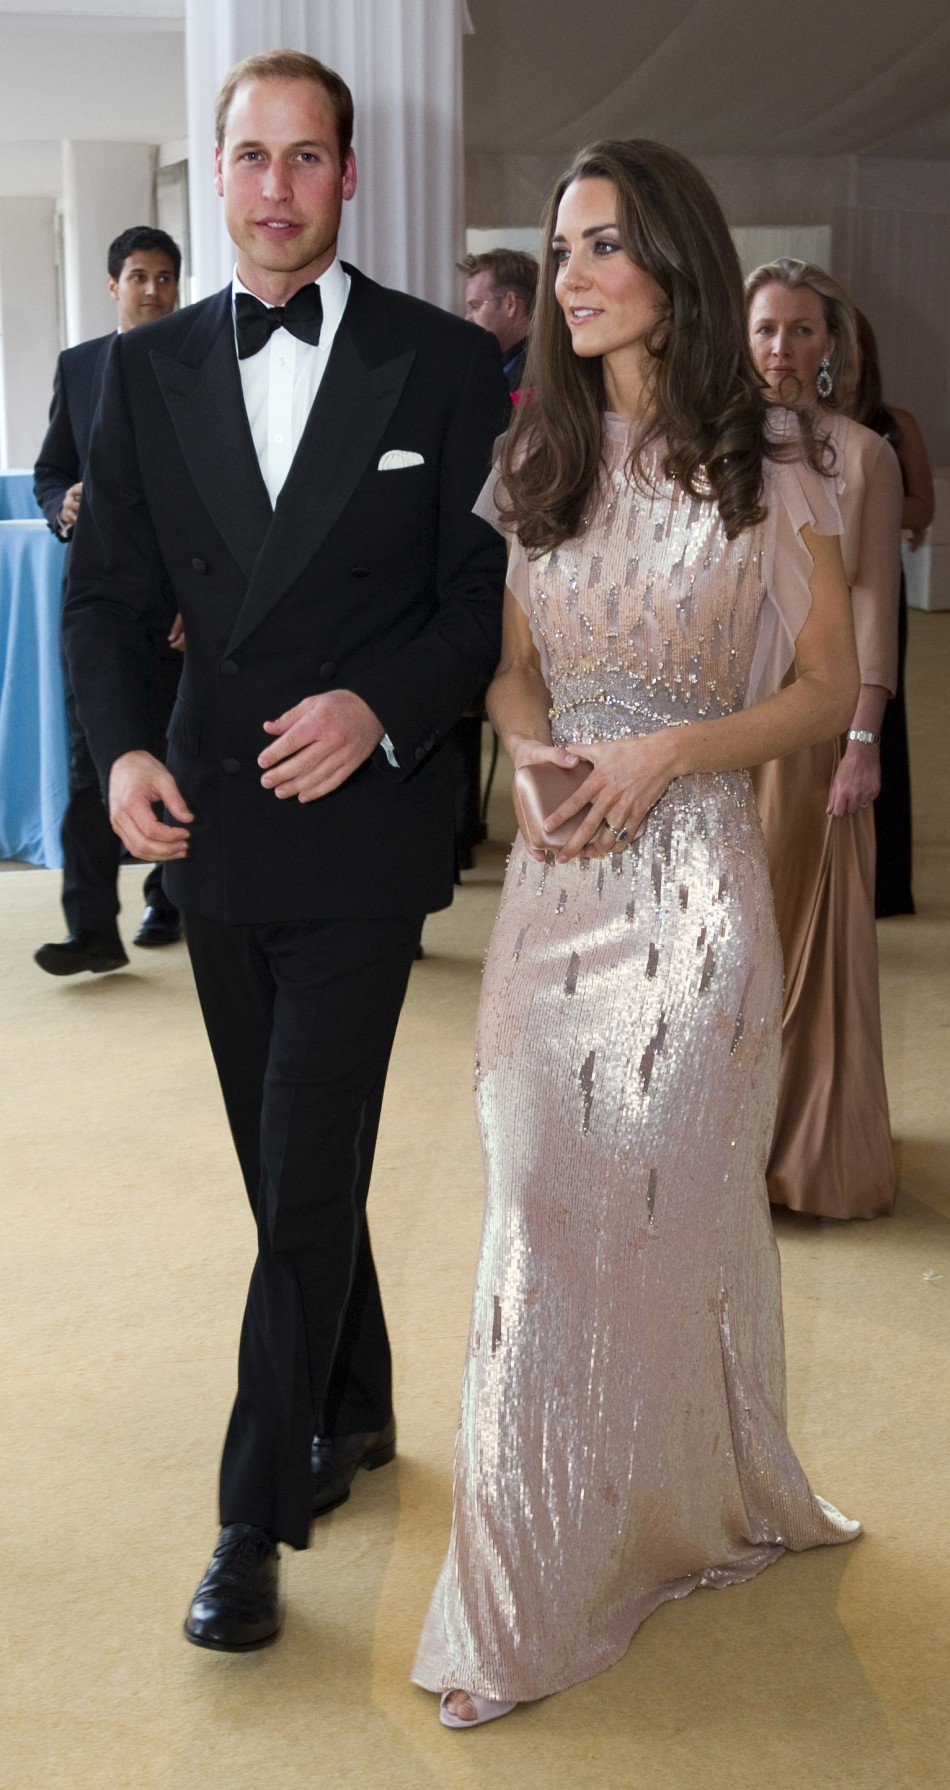 Britain's Prince William and his wife Catherine, Duchess of Cambridge arrive at ARK gala dinner at Kensington Palace in London